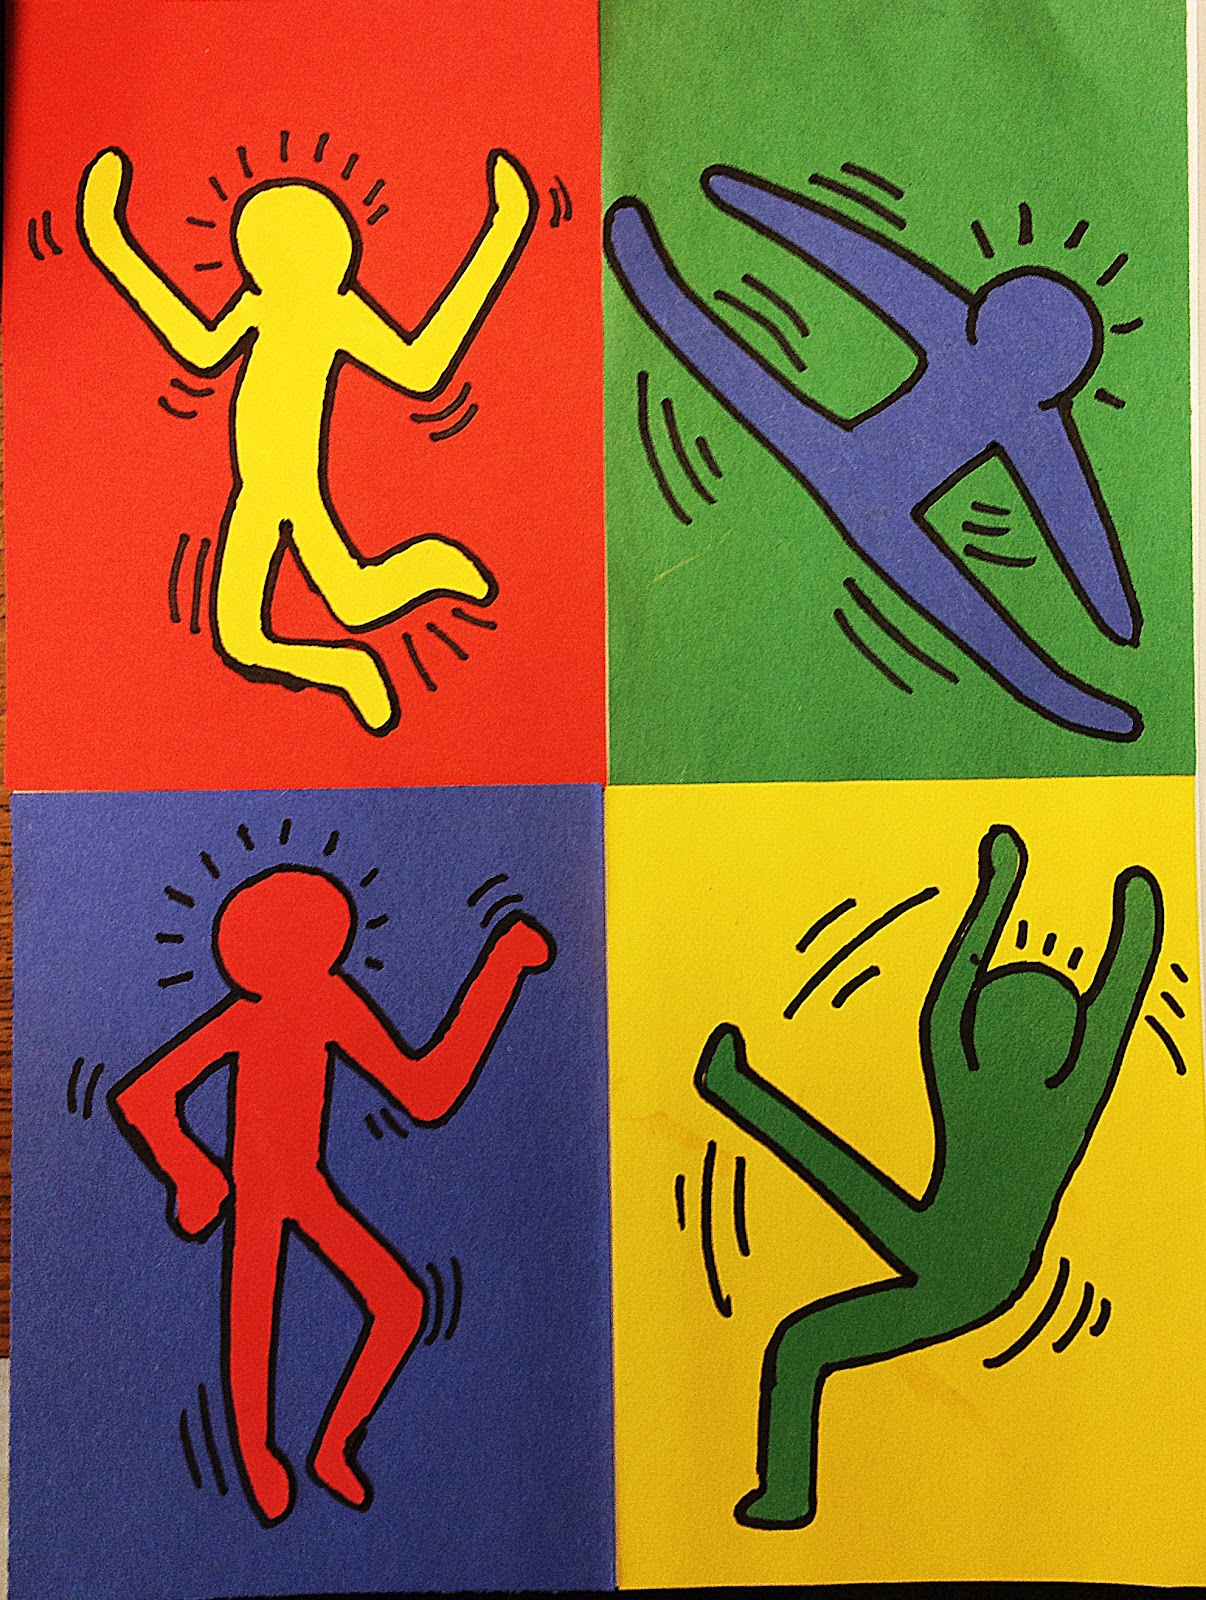 keith haring figure templates - keith haring figures related keywords keith haring